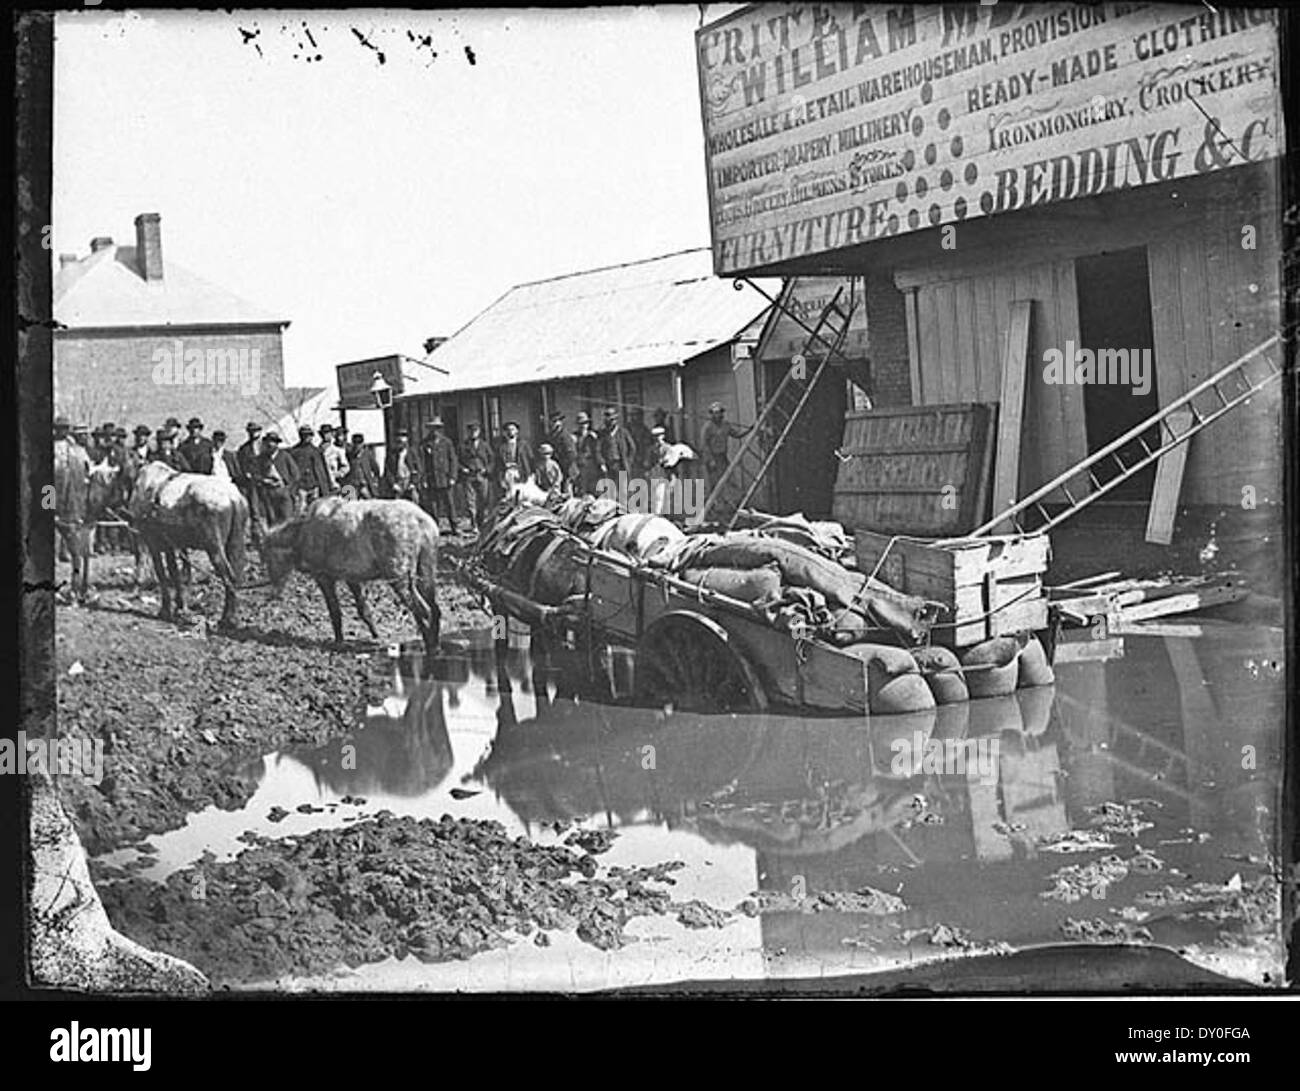 Horse and cart bogged in what was once a gold digging outside Meares flooded Criterion Store, Clarke Street, Hill End, Winter 1872 / American & Australasian Photographic Company - Stock Image